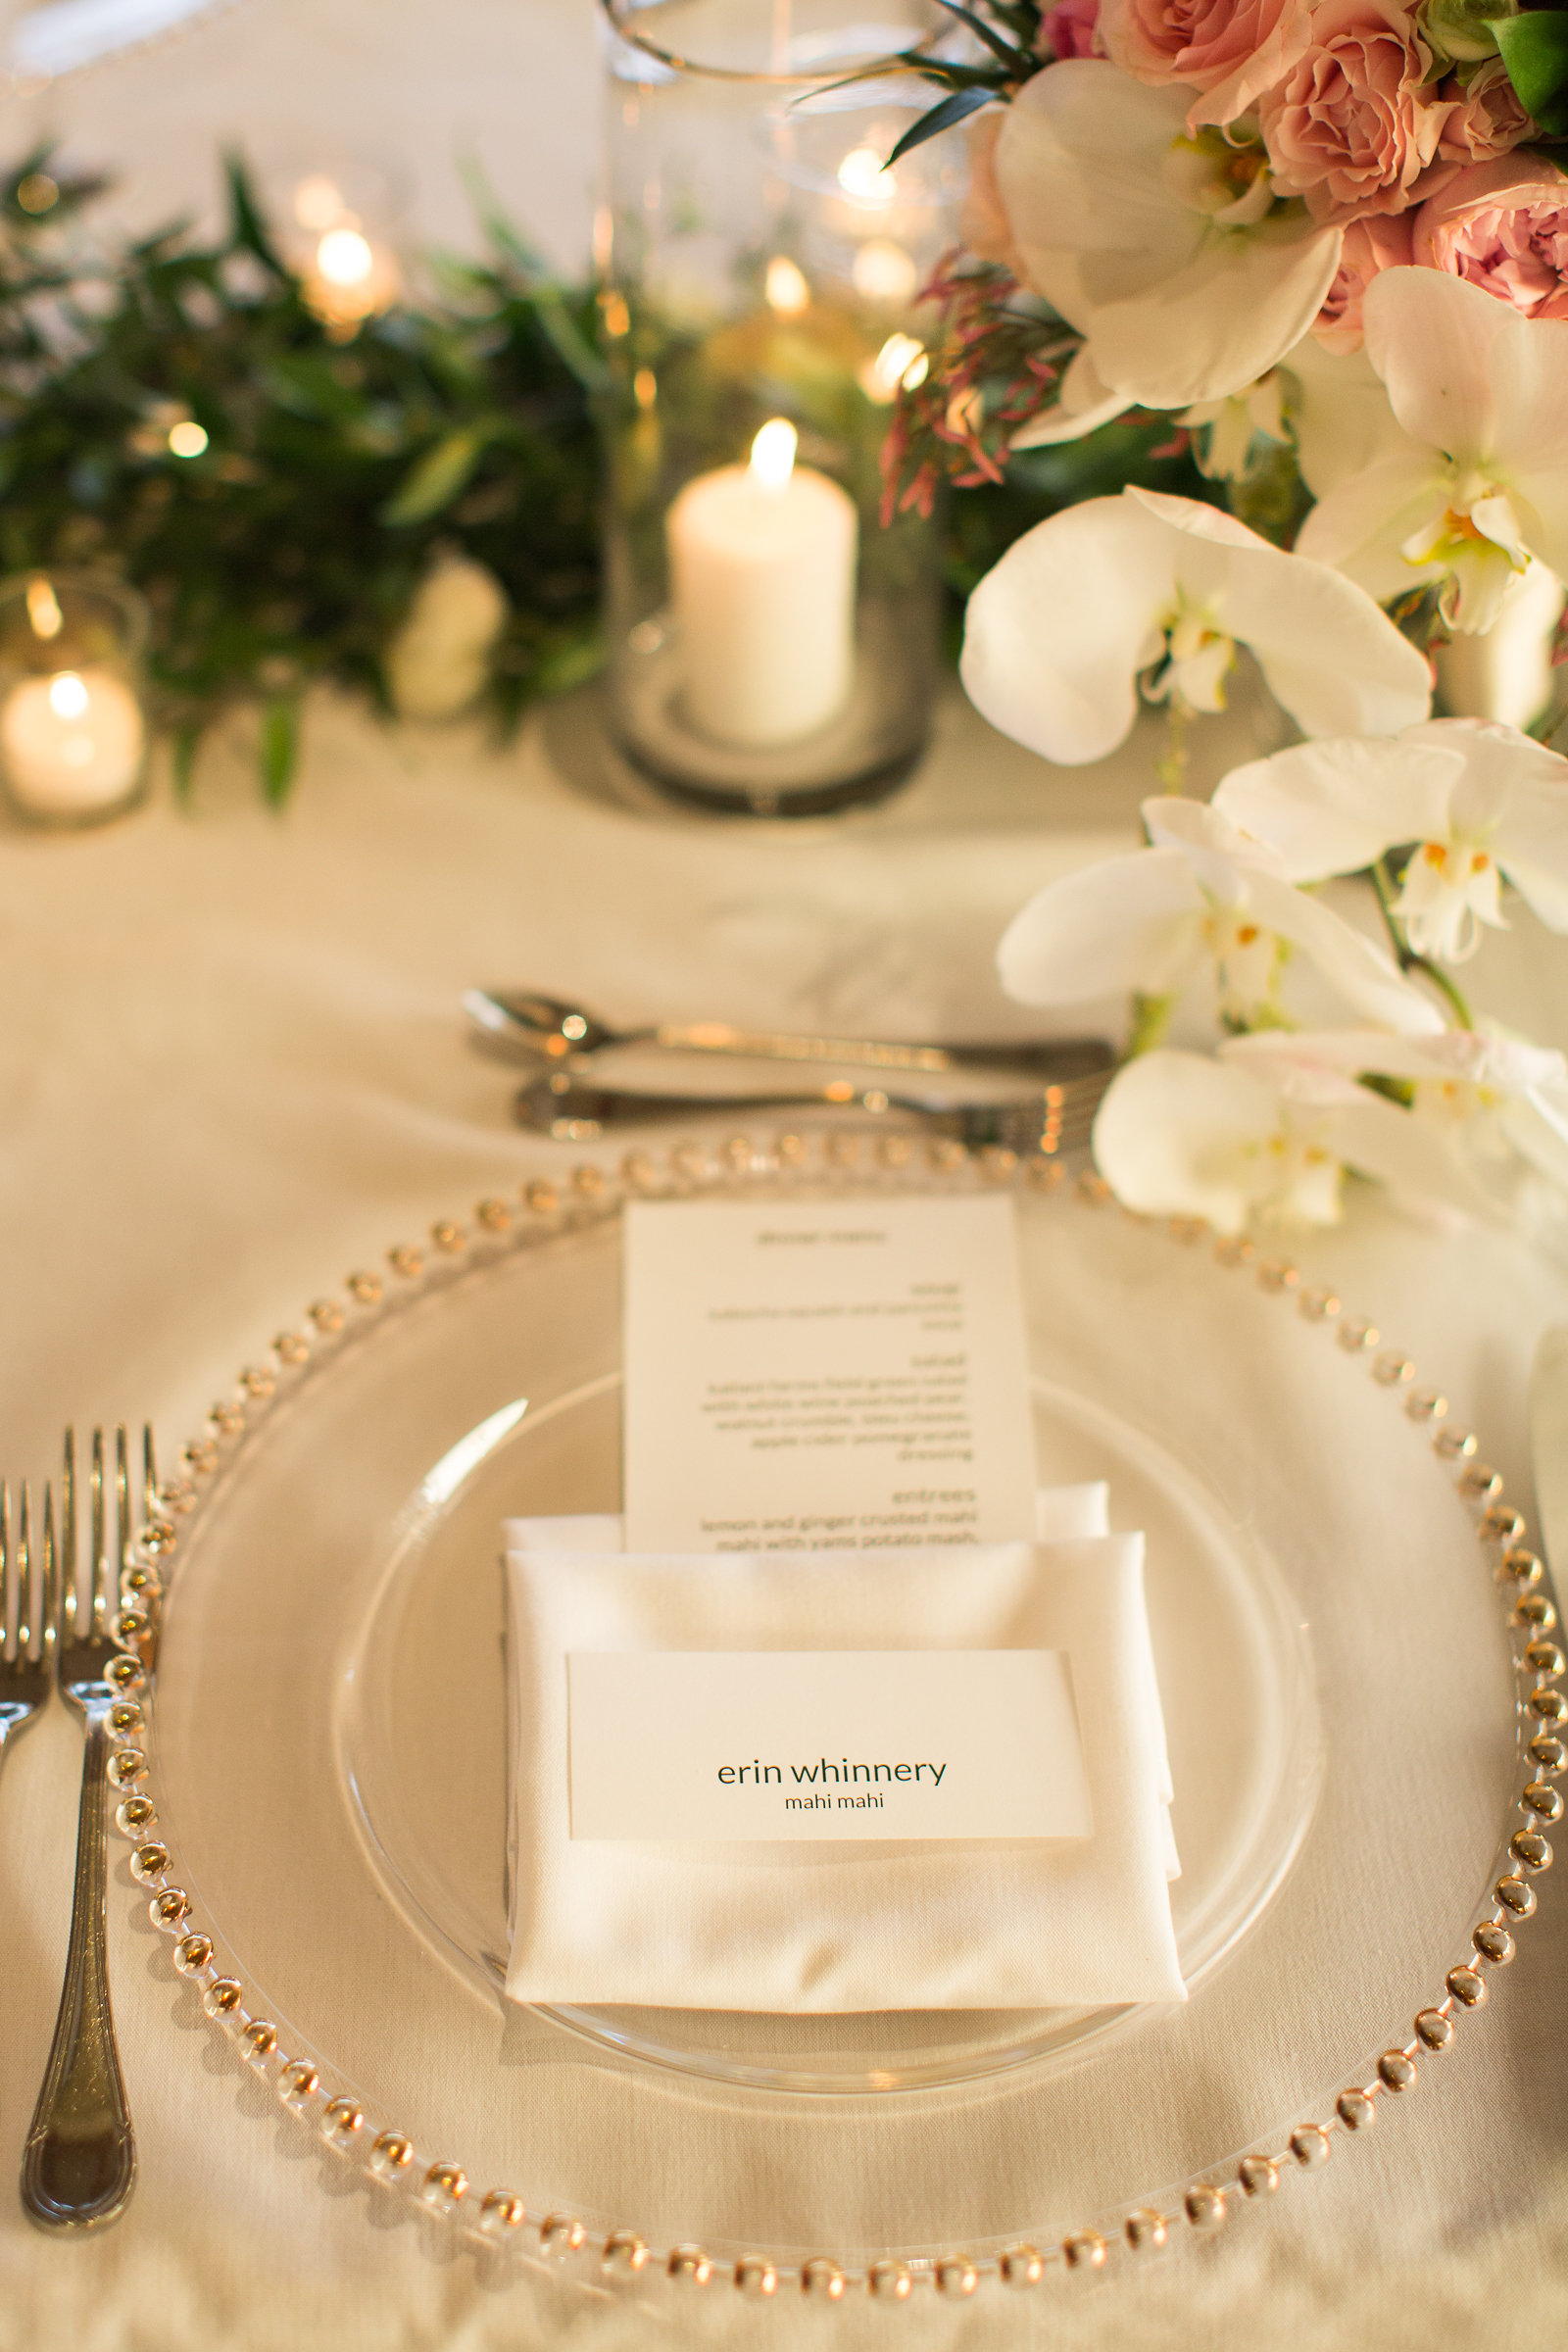 Elegant Table Setting with Warm Candle Light